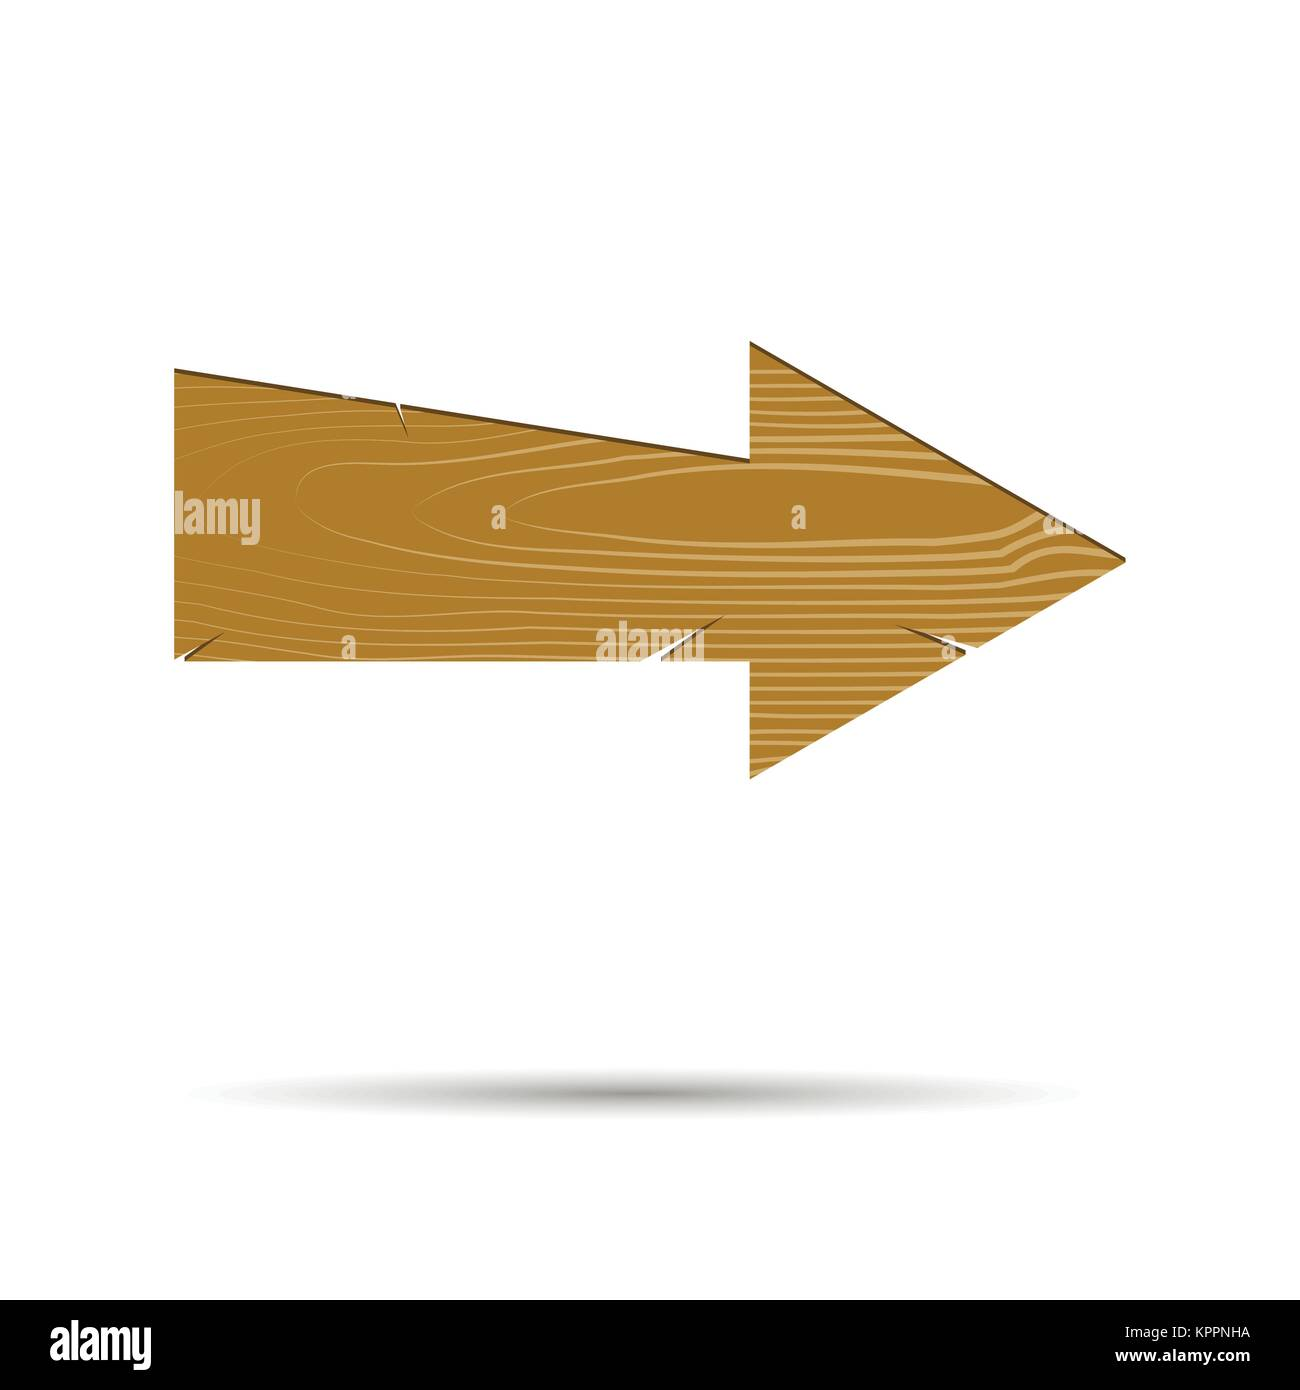 Vintage Arrow Wood Isolated Wooden Timber Pointer Direction Signboard Vector Illustration